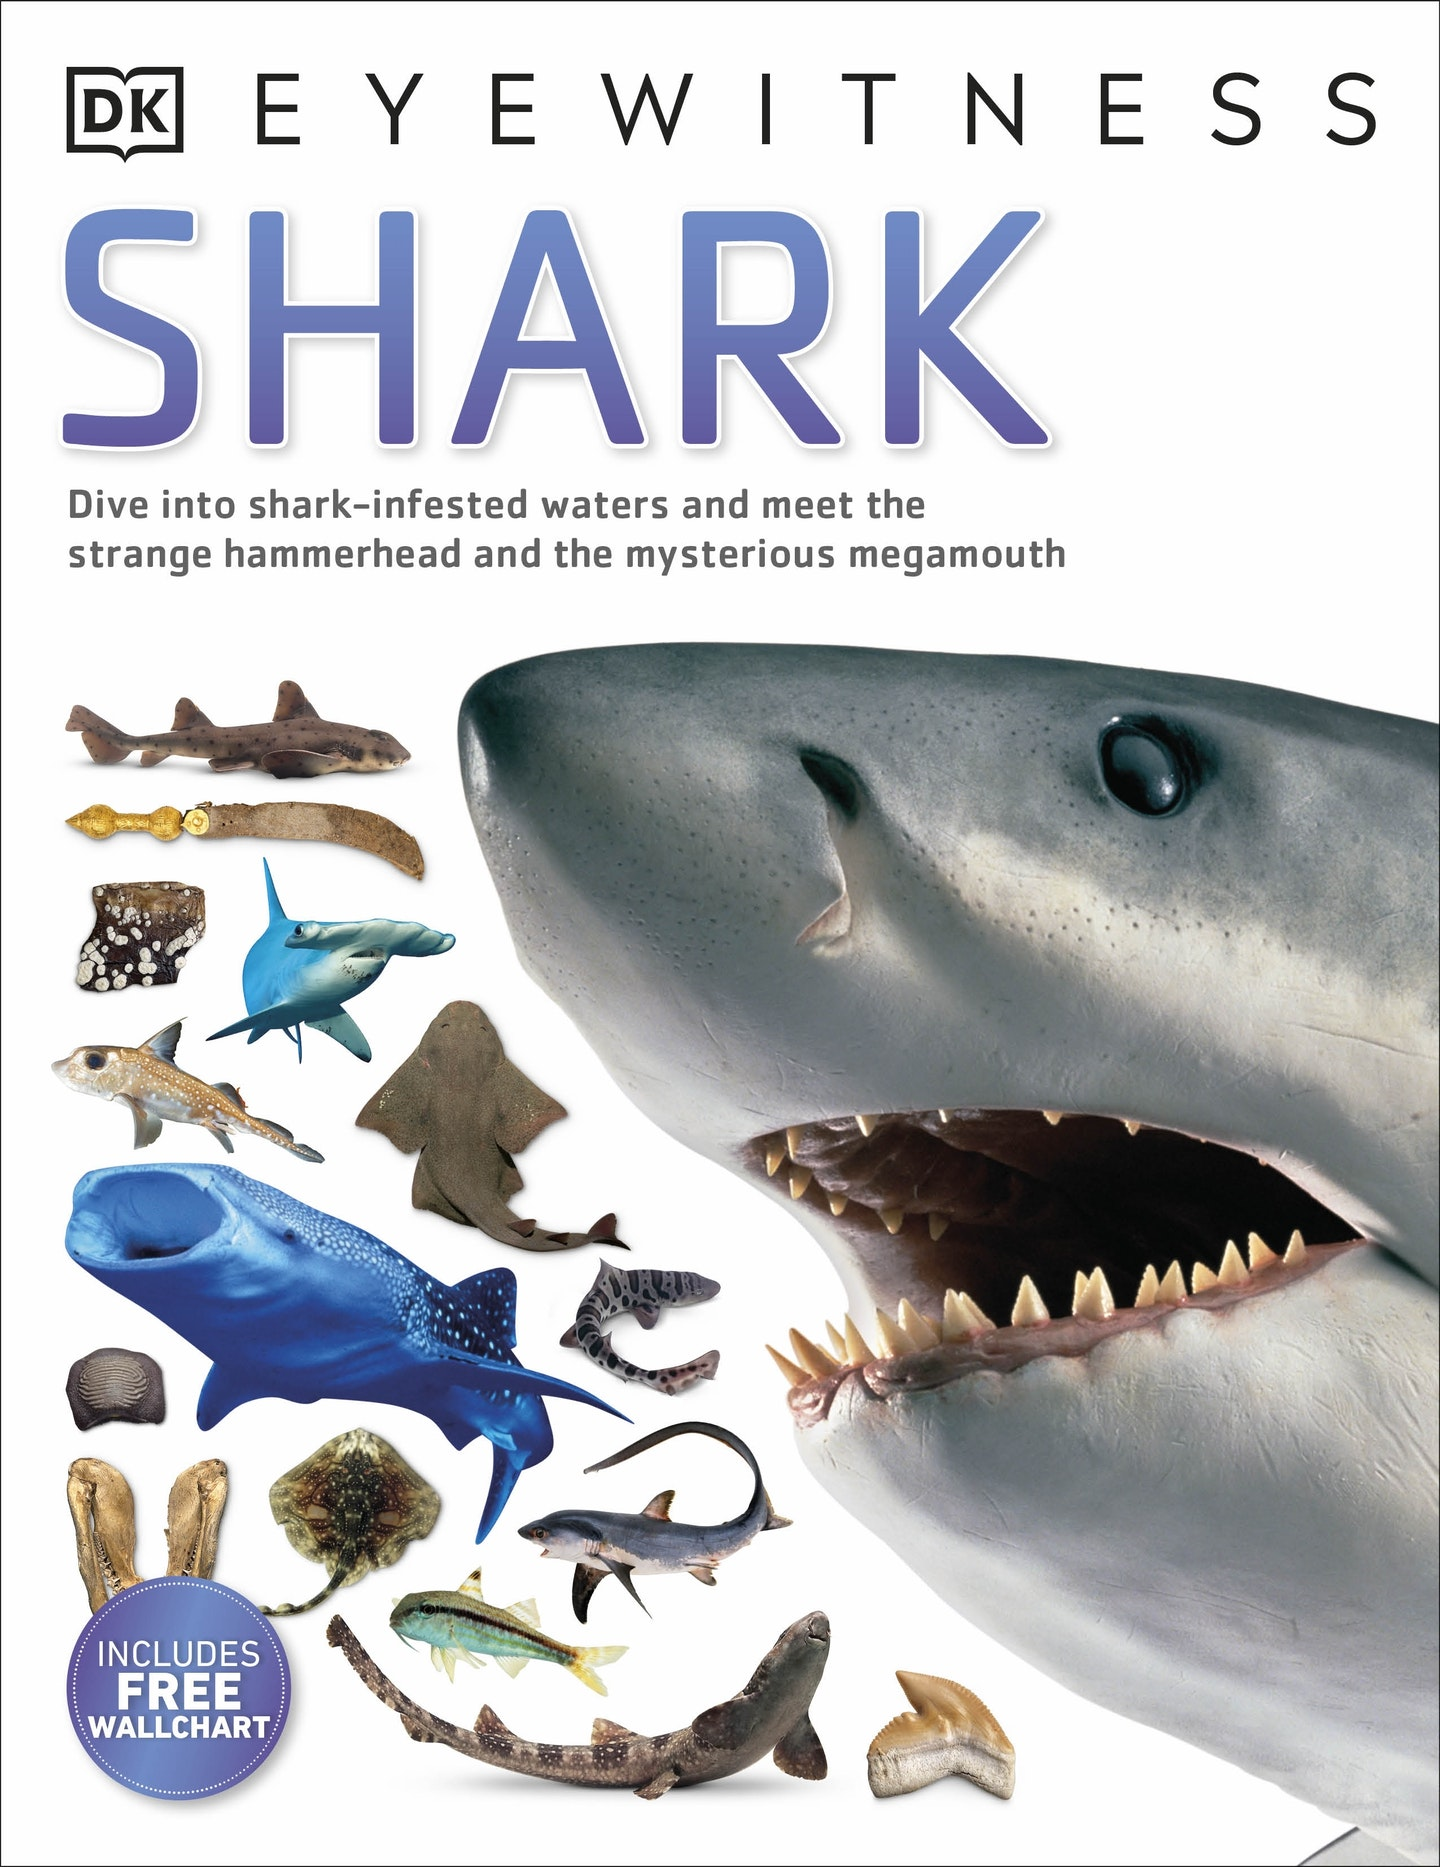 dk eyewitness shark penguin books australia